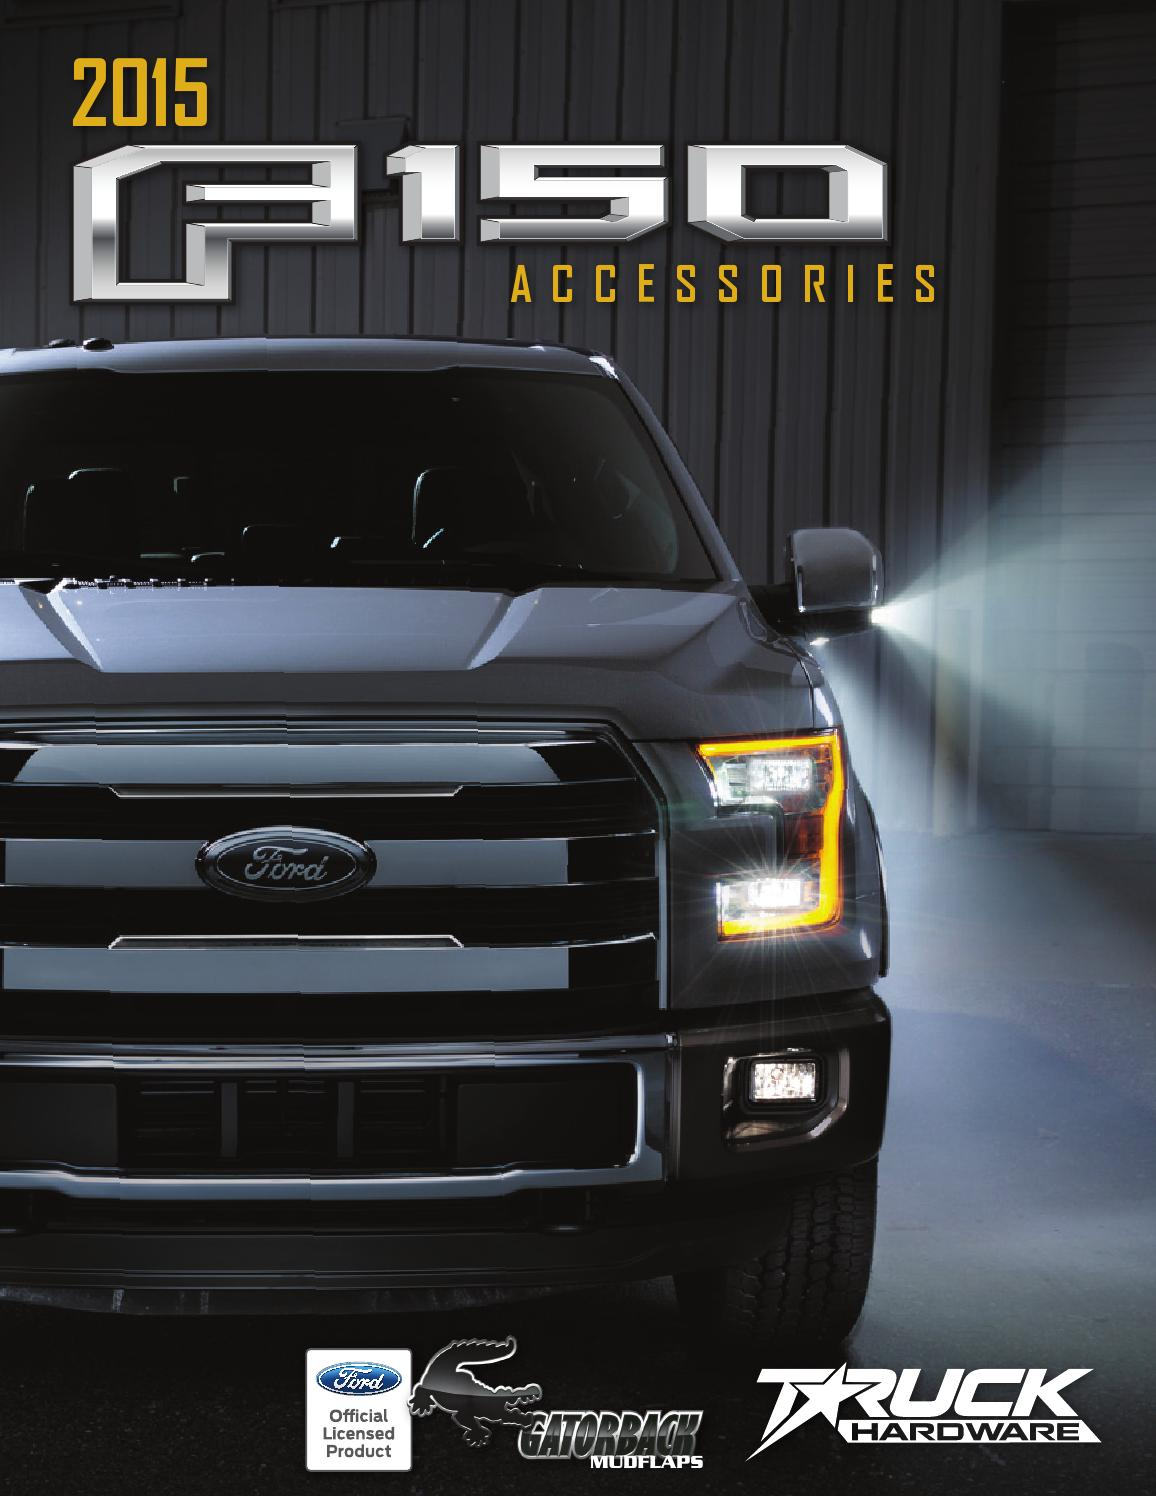 2015 Ford F 150 Accessories Catalog By Truck Hardware Issuu